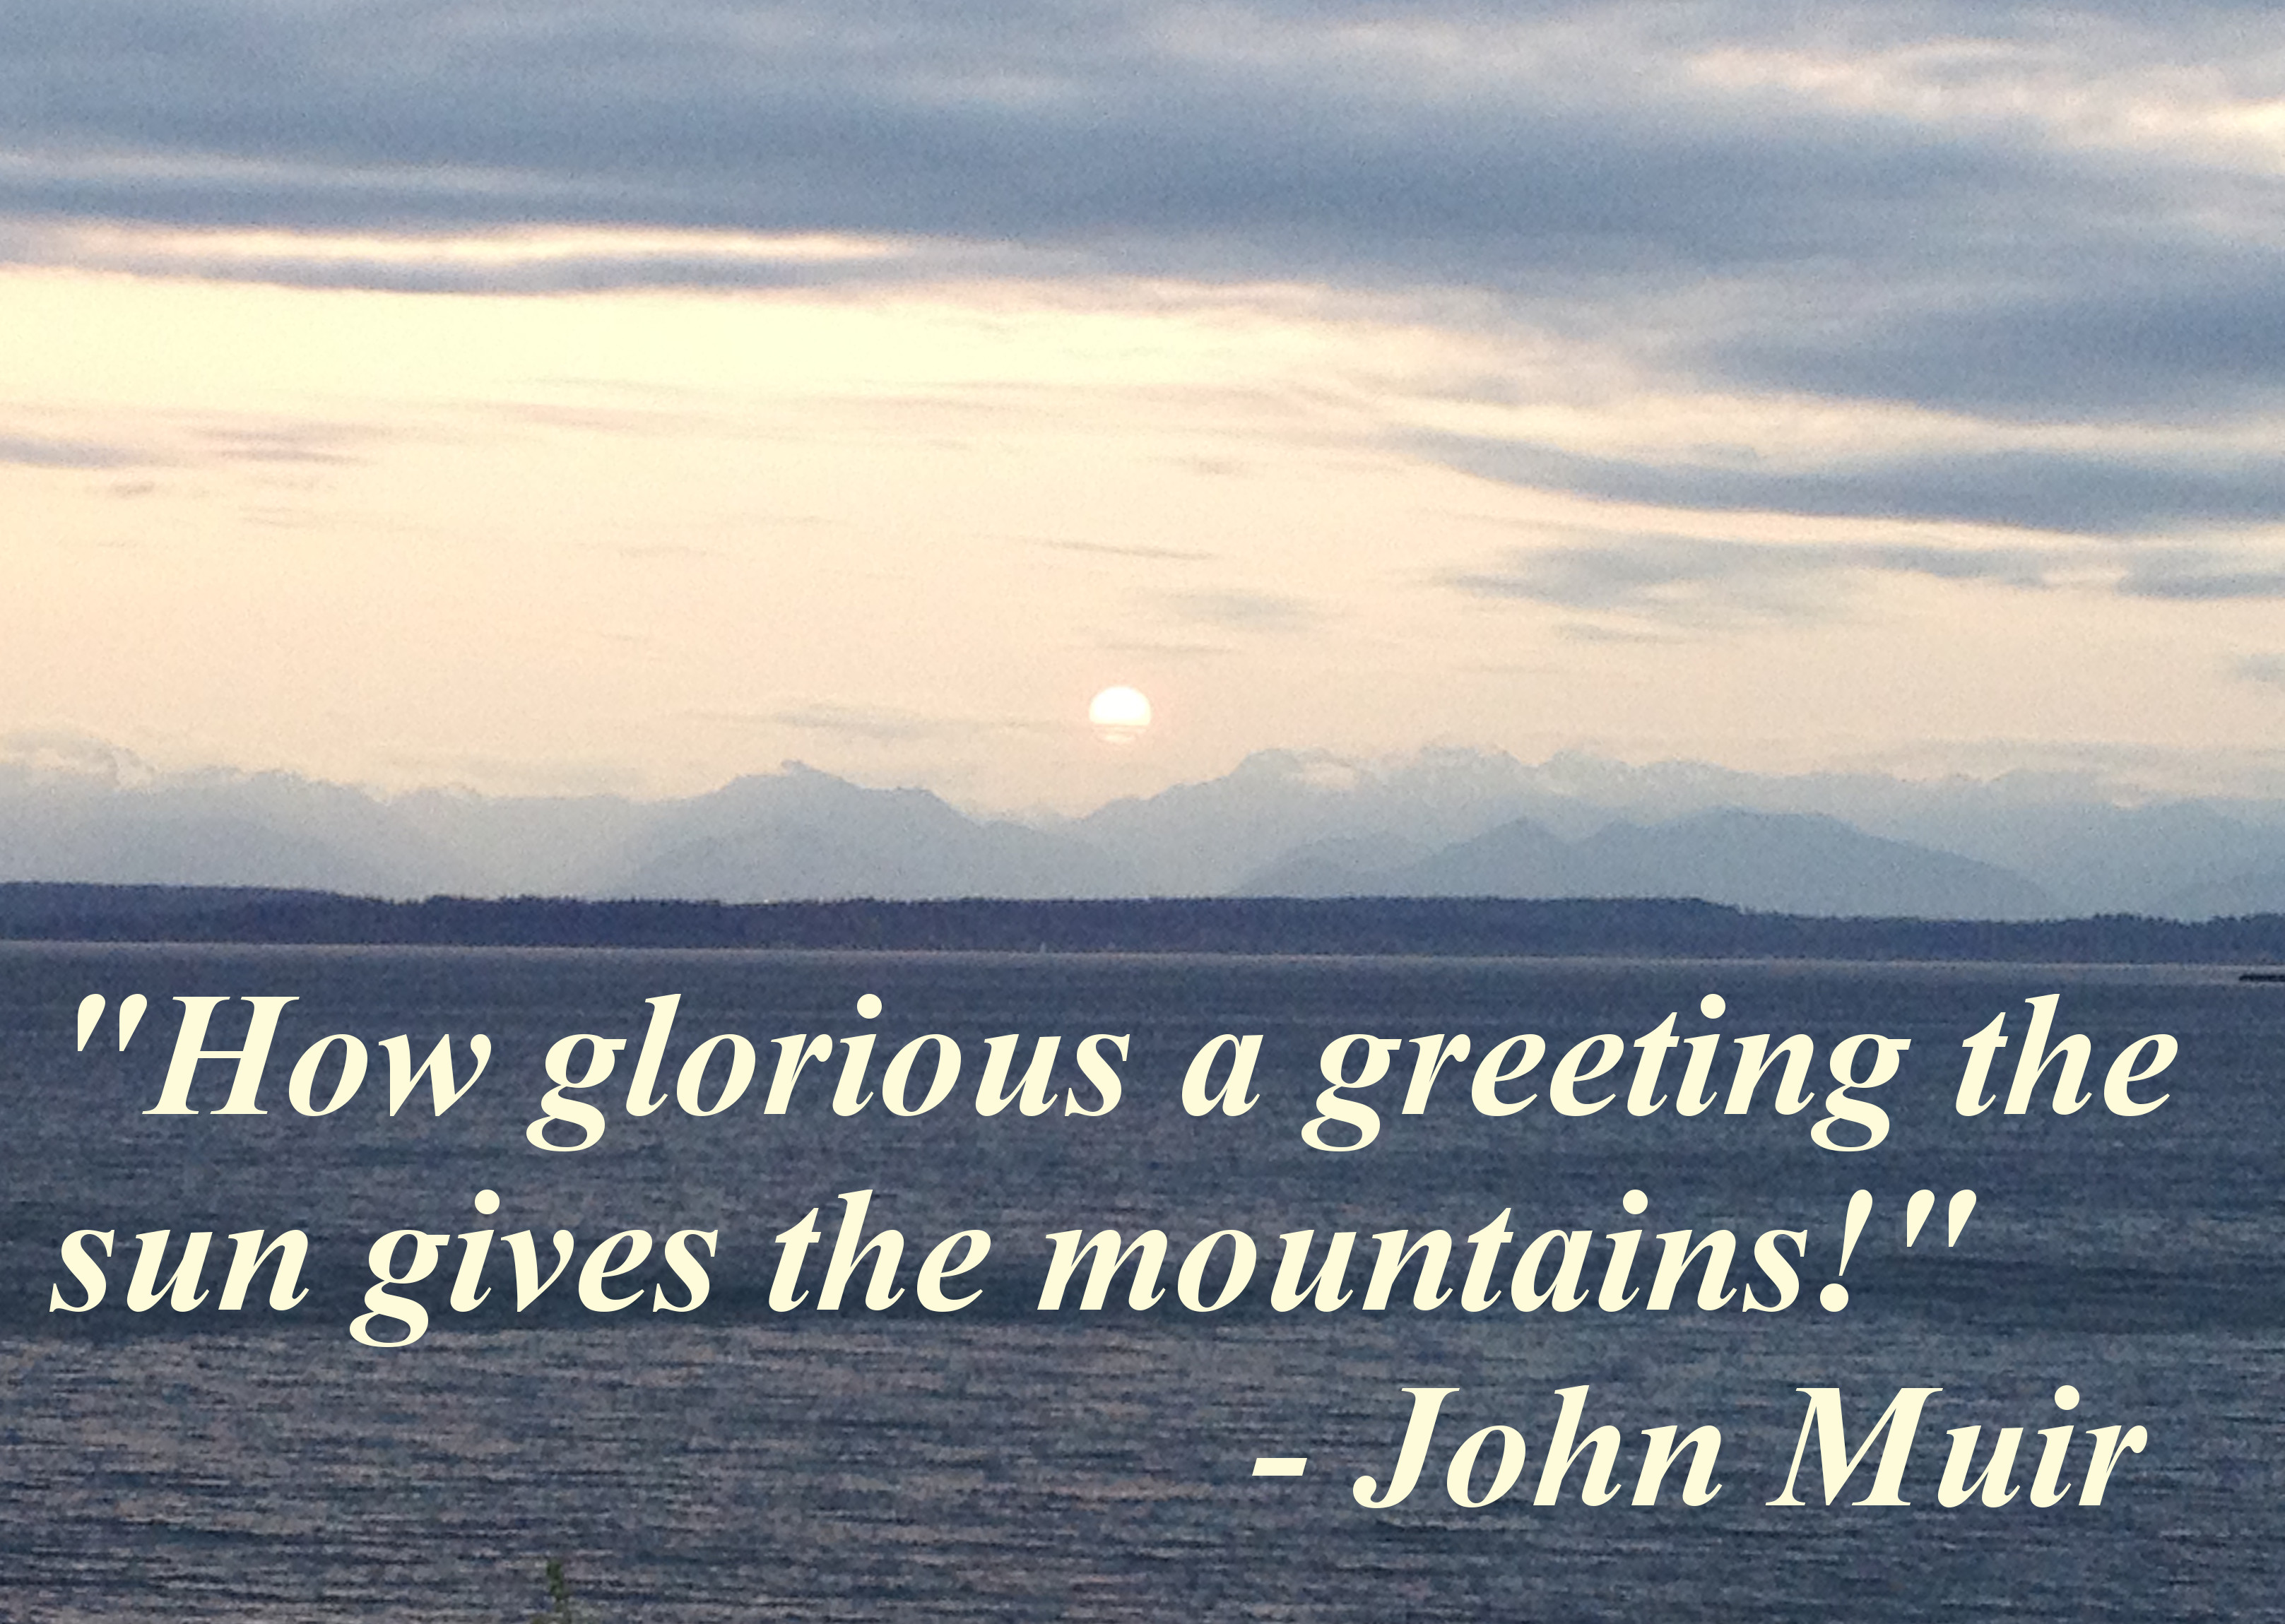 Olympic Mountains Sunrise With John Muir Quote Tamarascameras